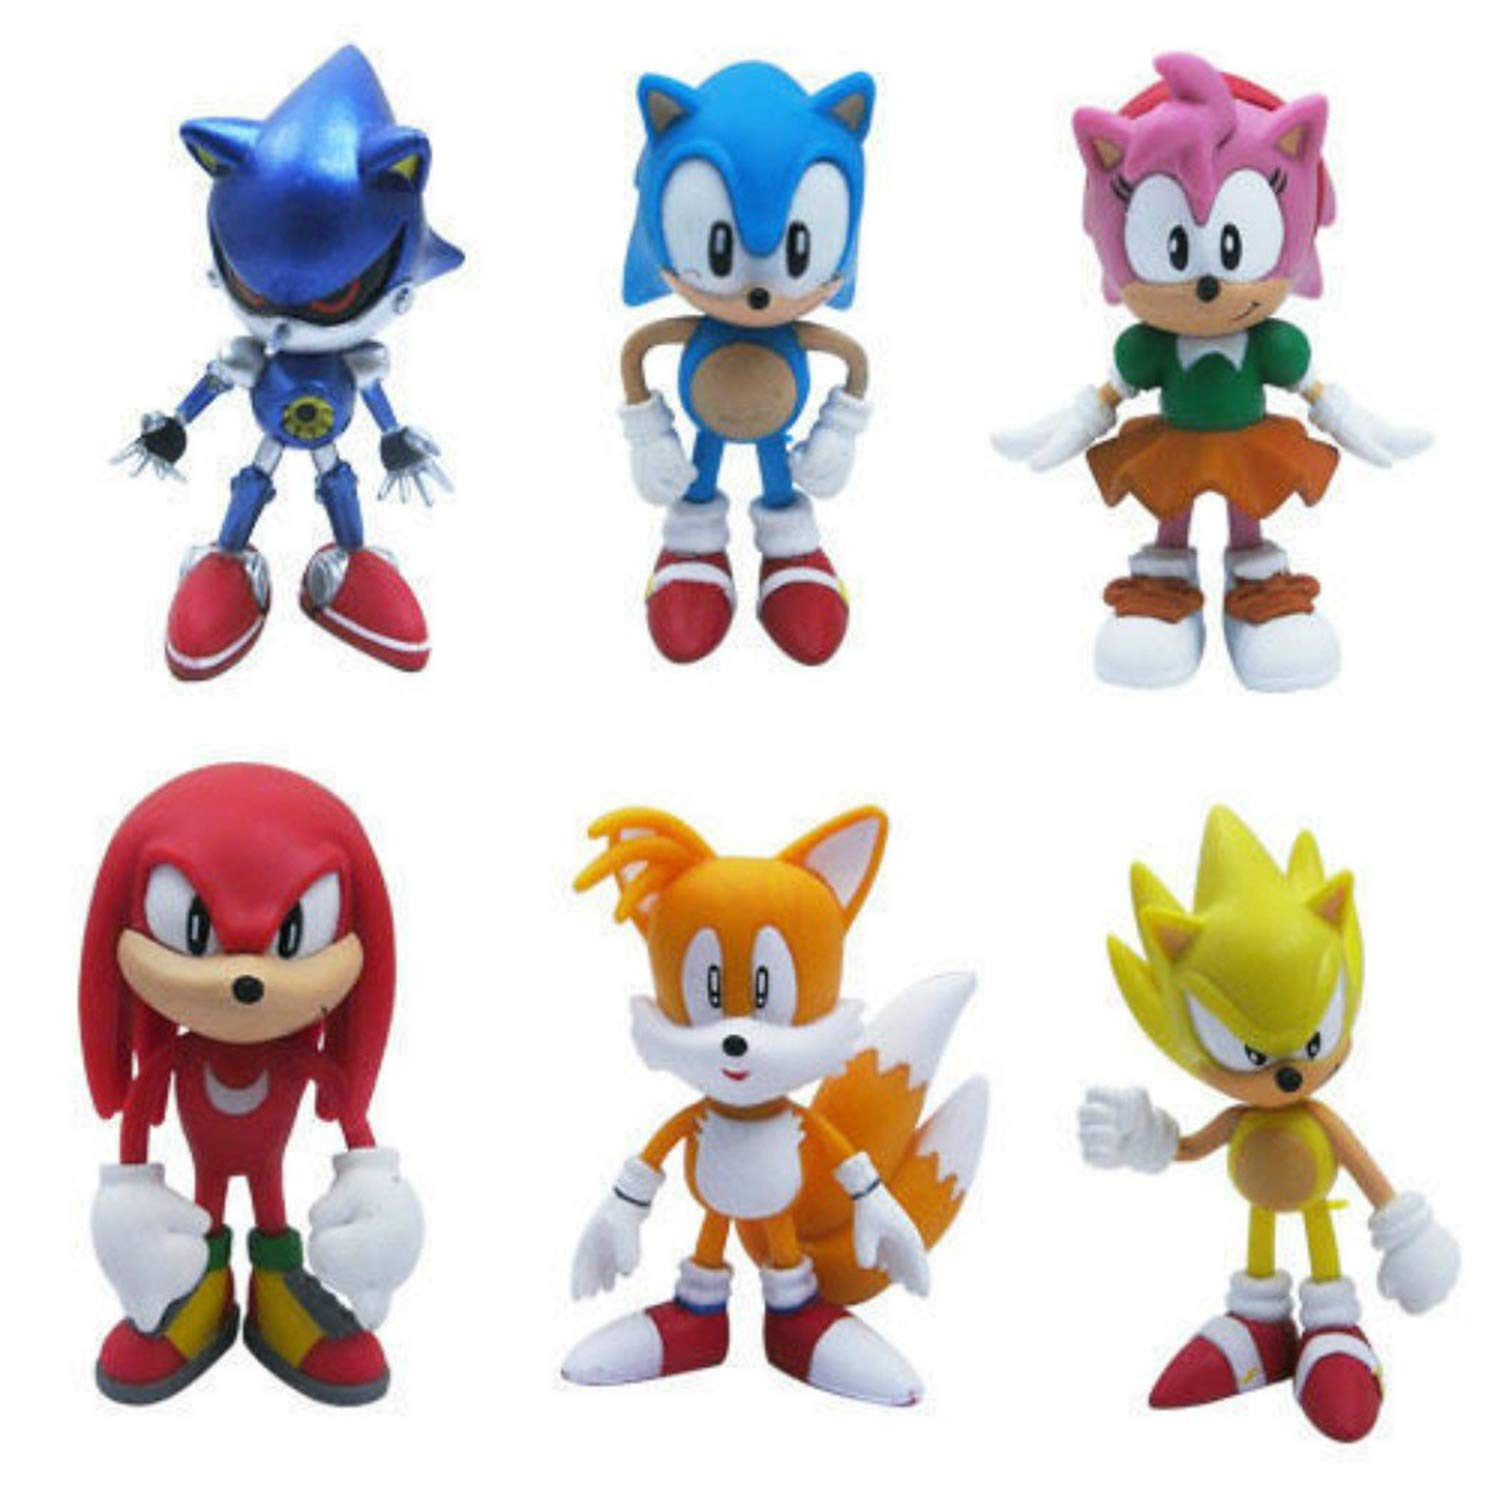 Set of 6pcs Sonic the Hedgehog Action Figures, Cake Toppers, 2.4'' by Bieber's Mall